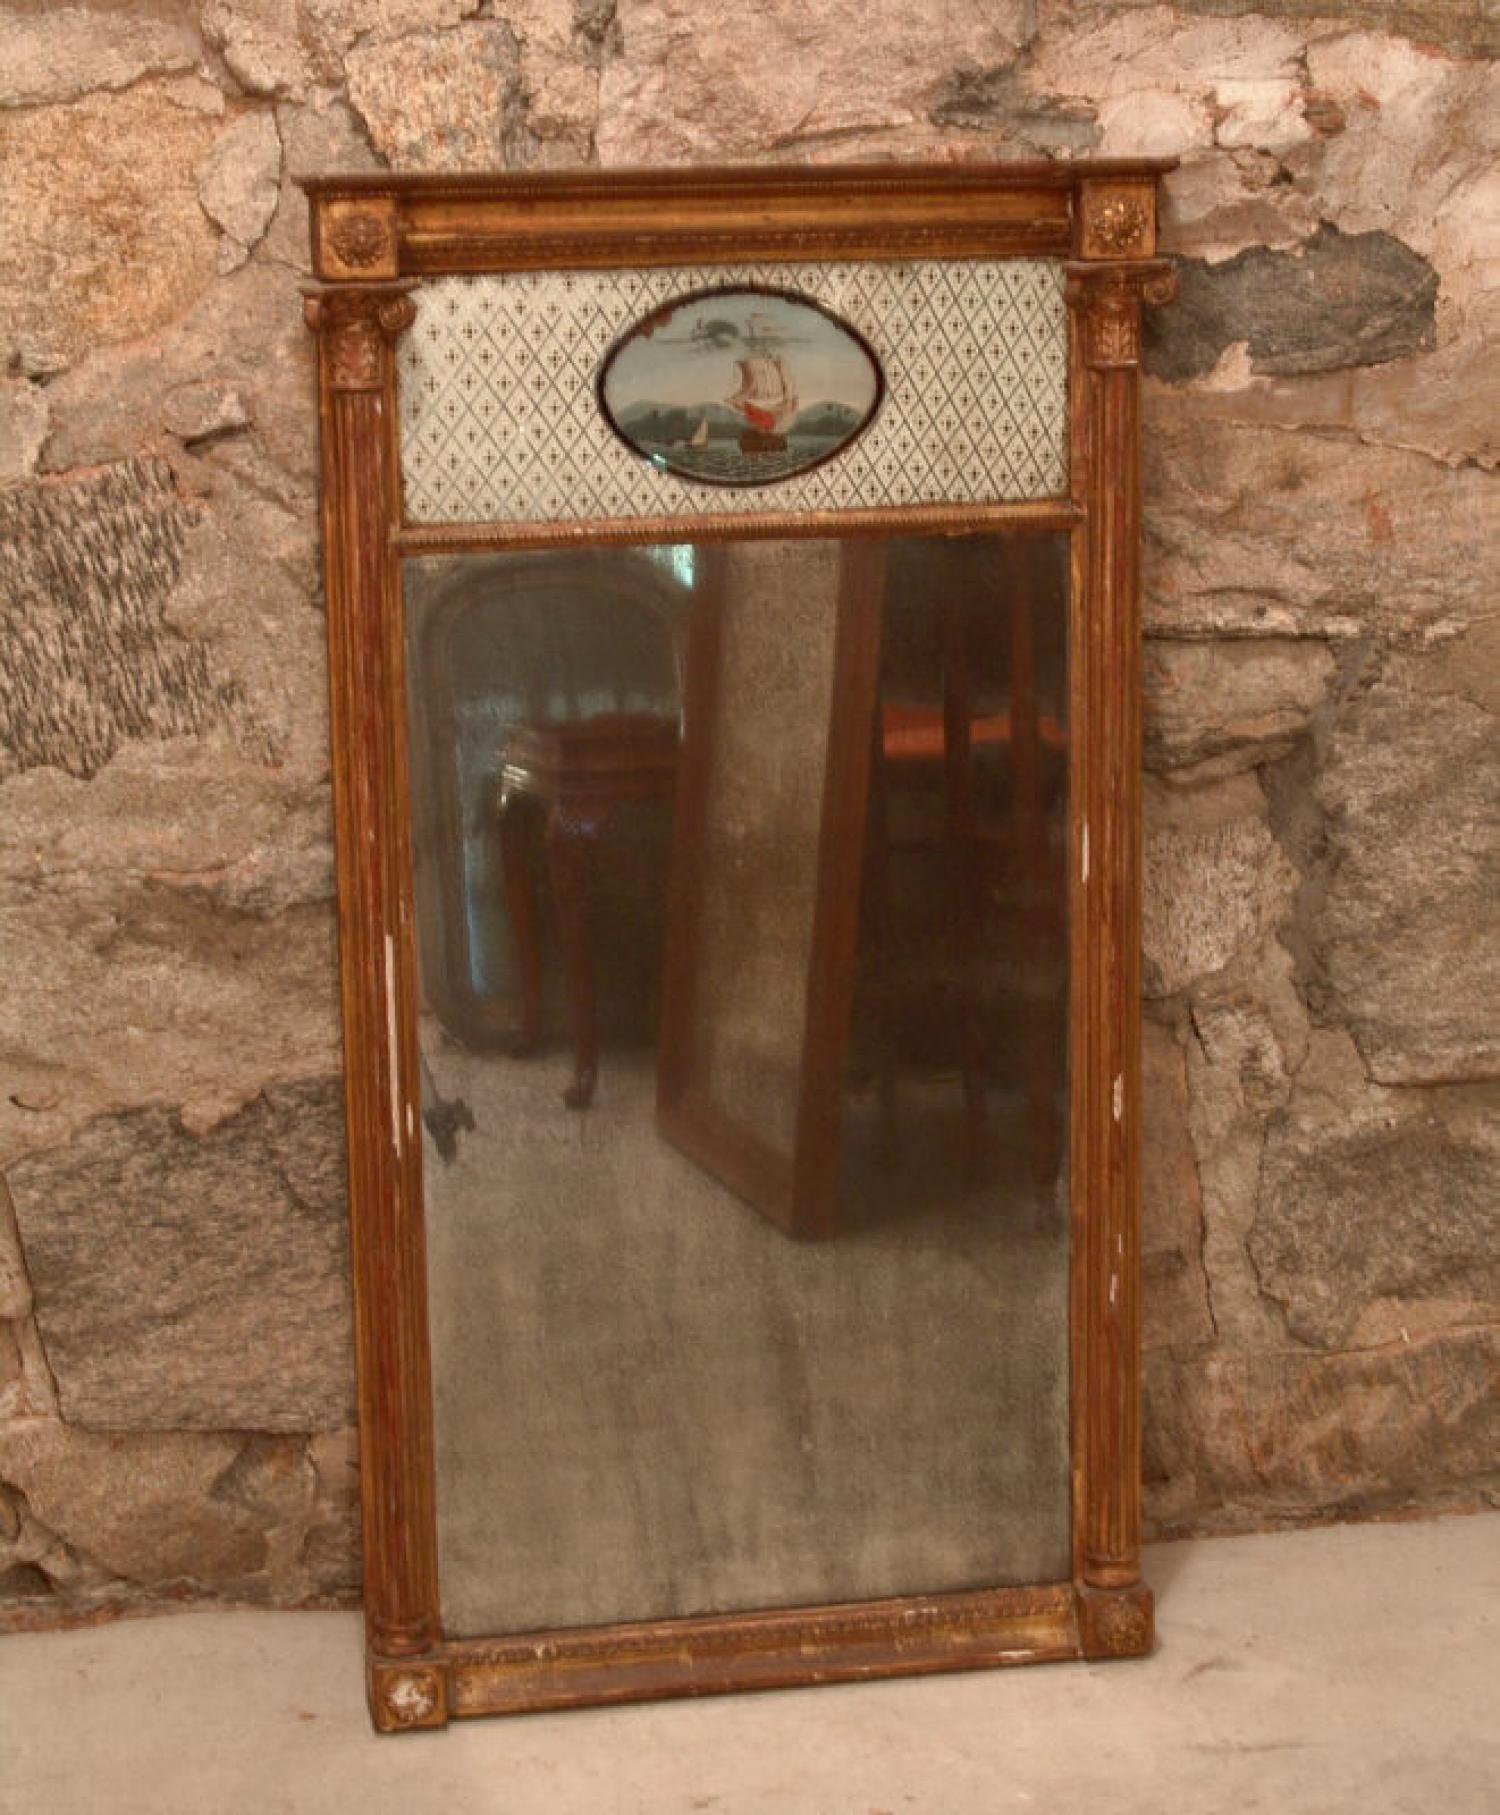 Early American Federal looking glass mirror with ship